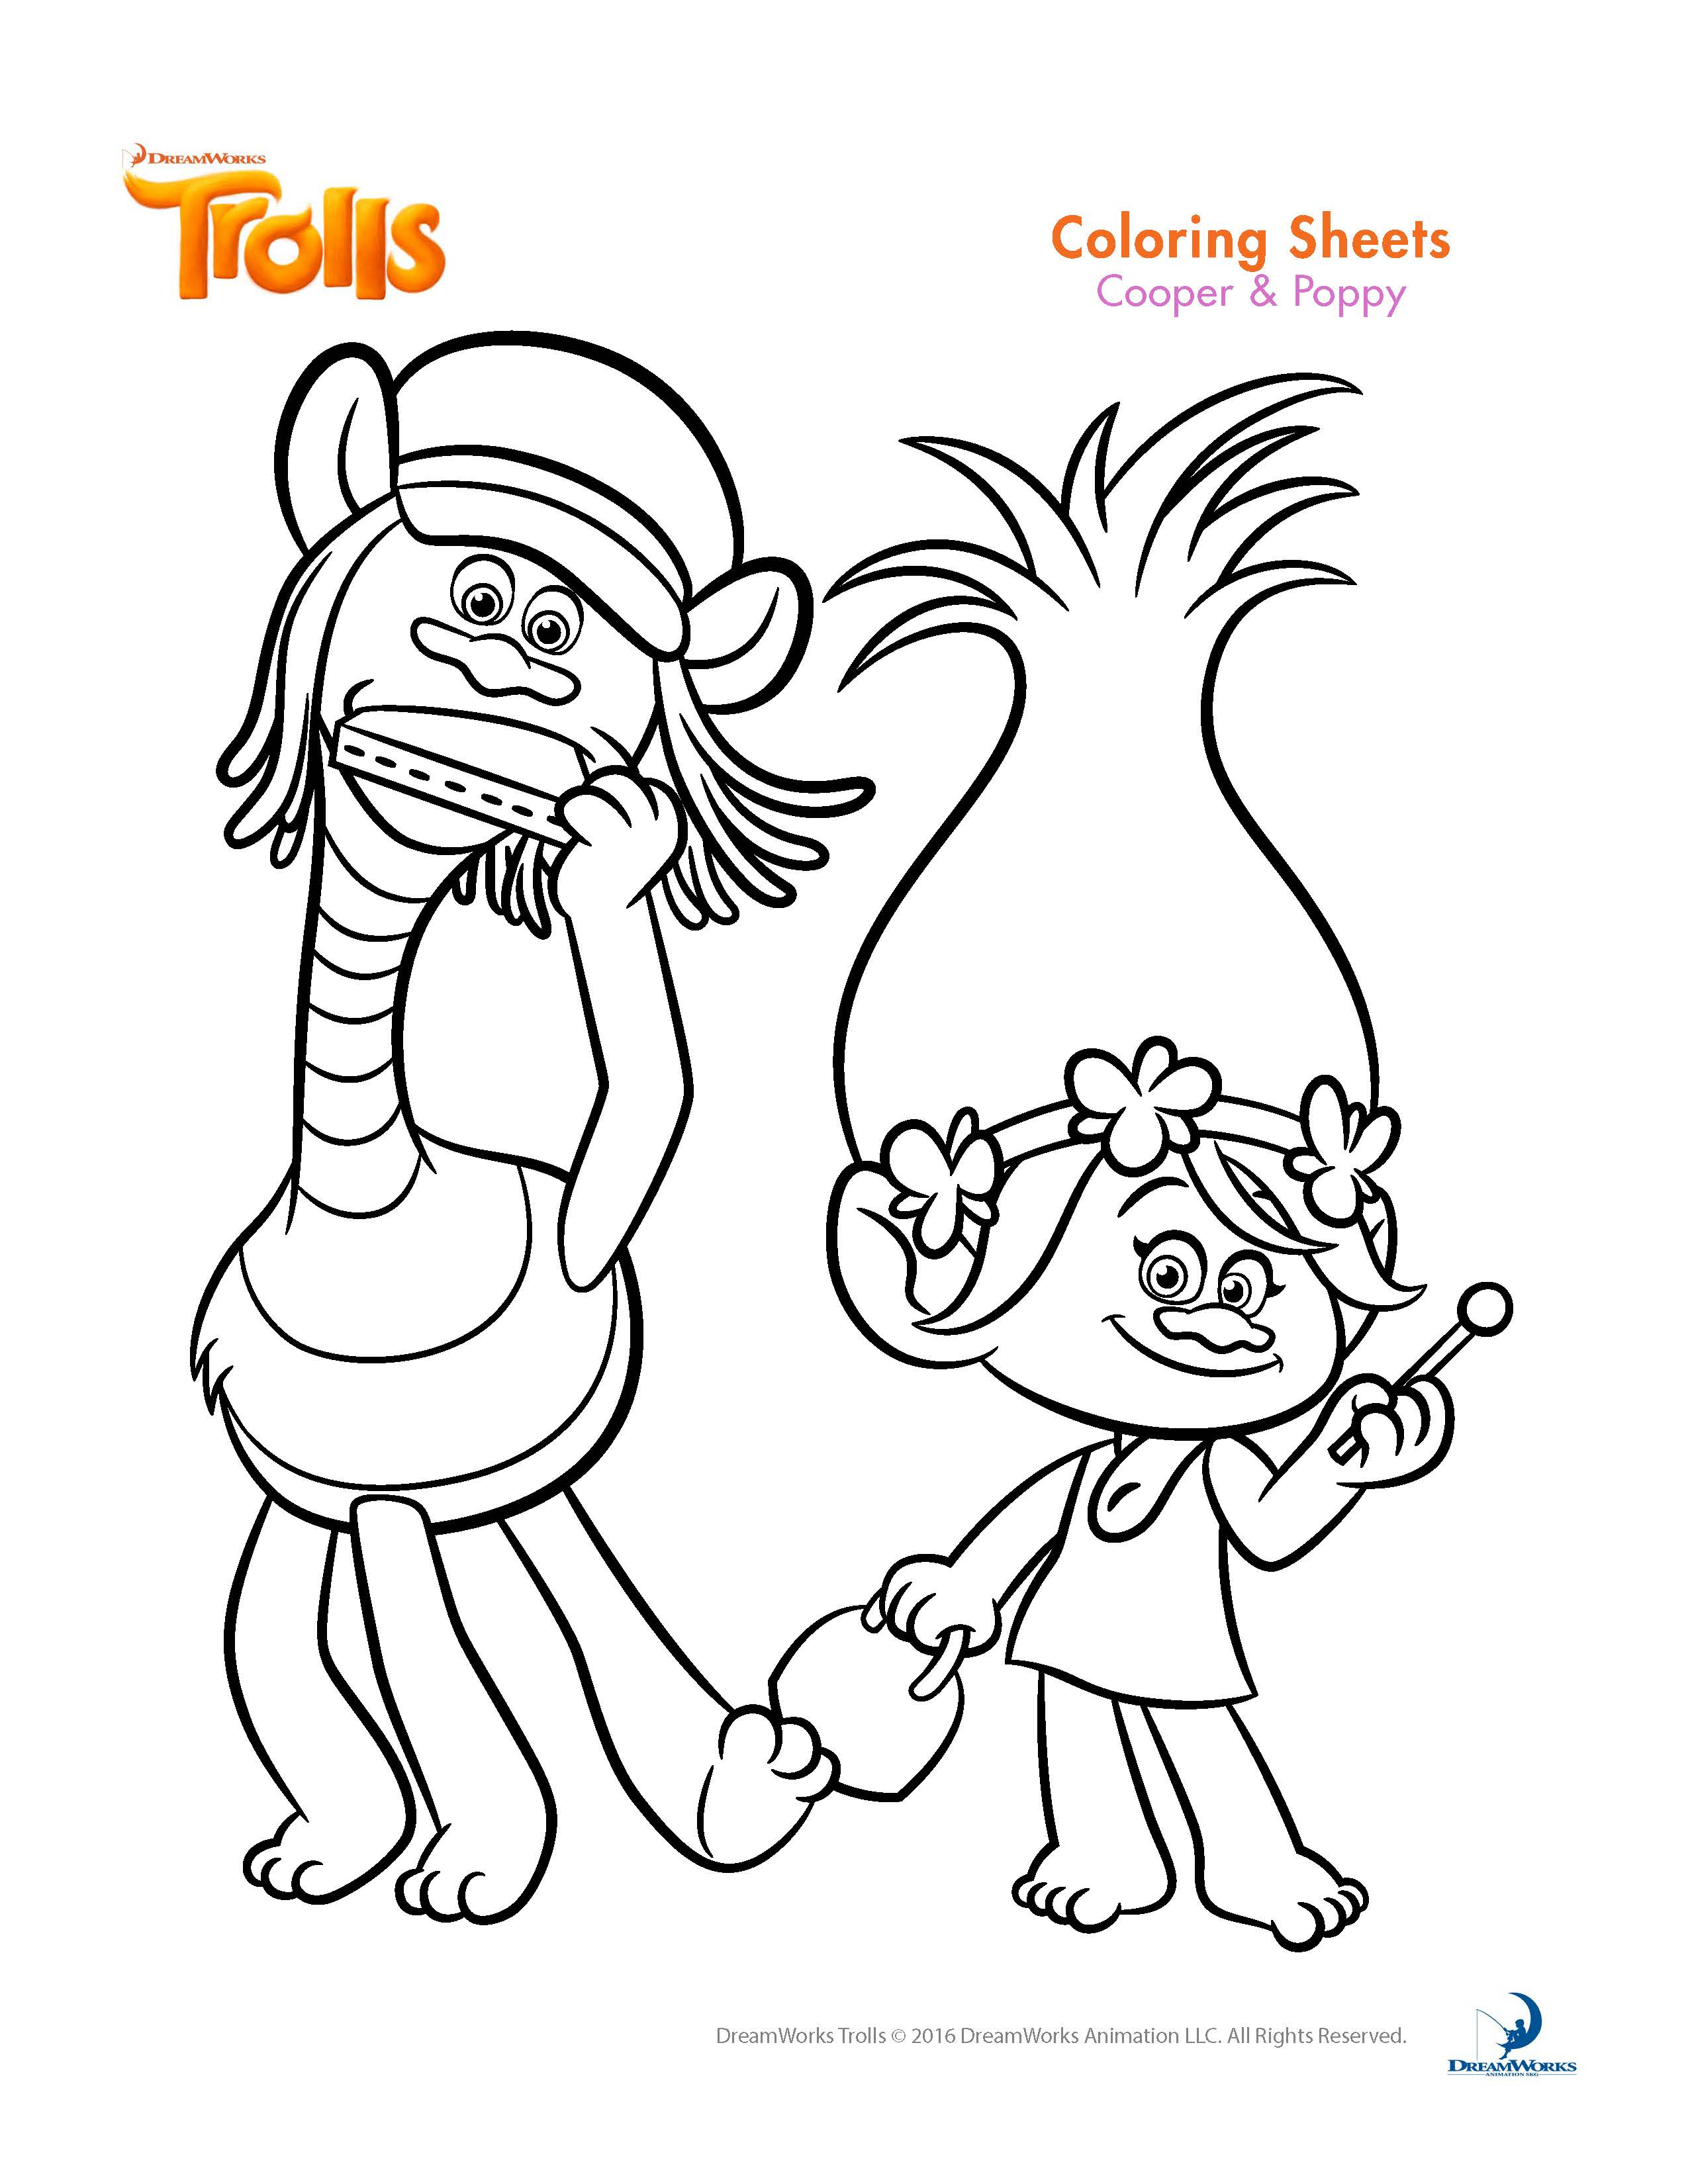 Trolls movie coloring pages best coloring pages for kids - Color for th birthday ...